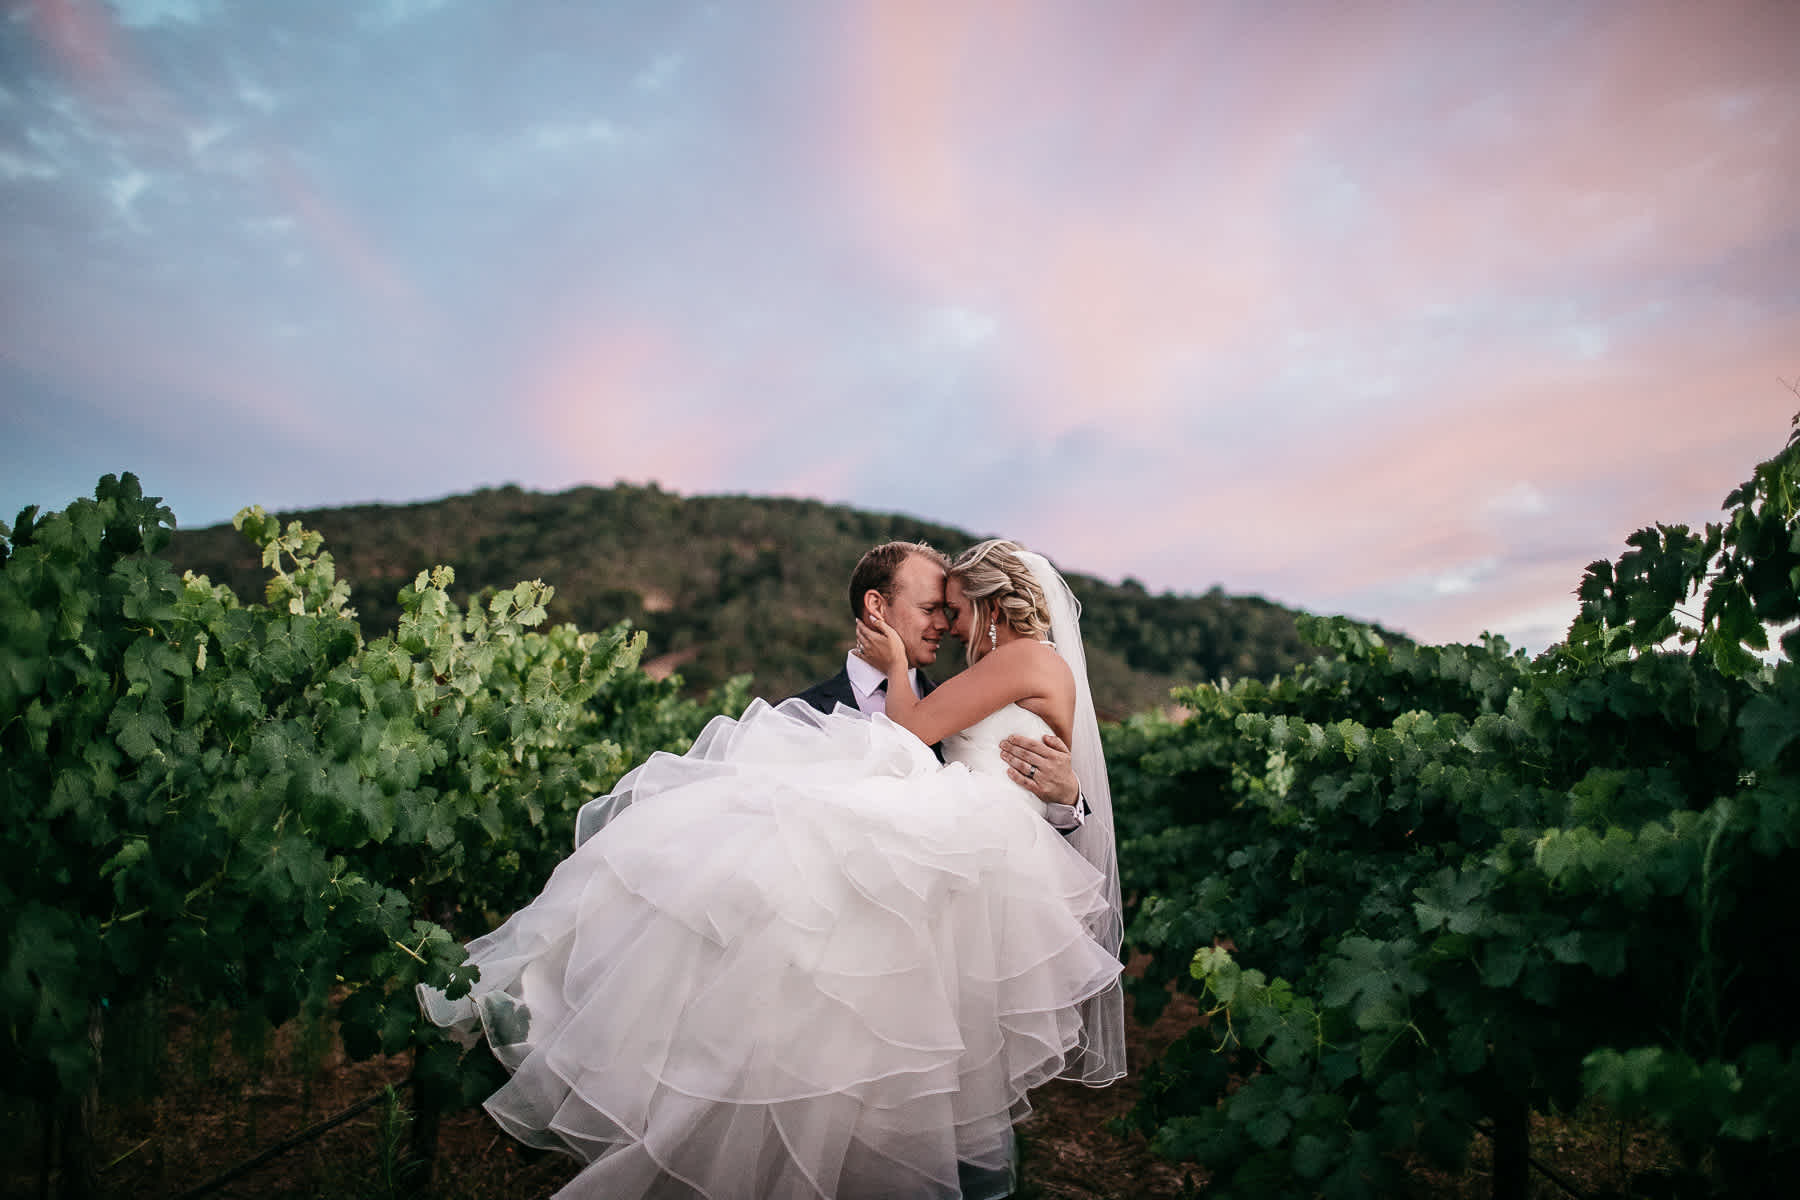 kirigin-cellars-gilroy-summer-sunset-wedding-93